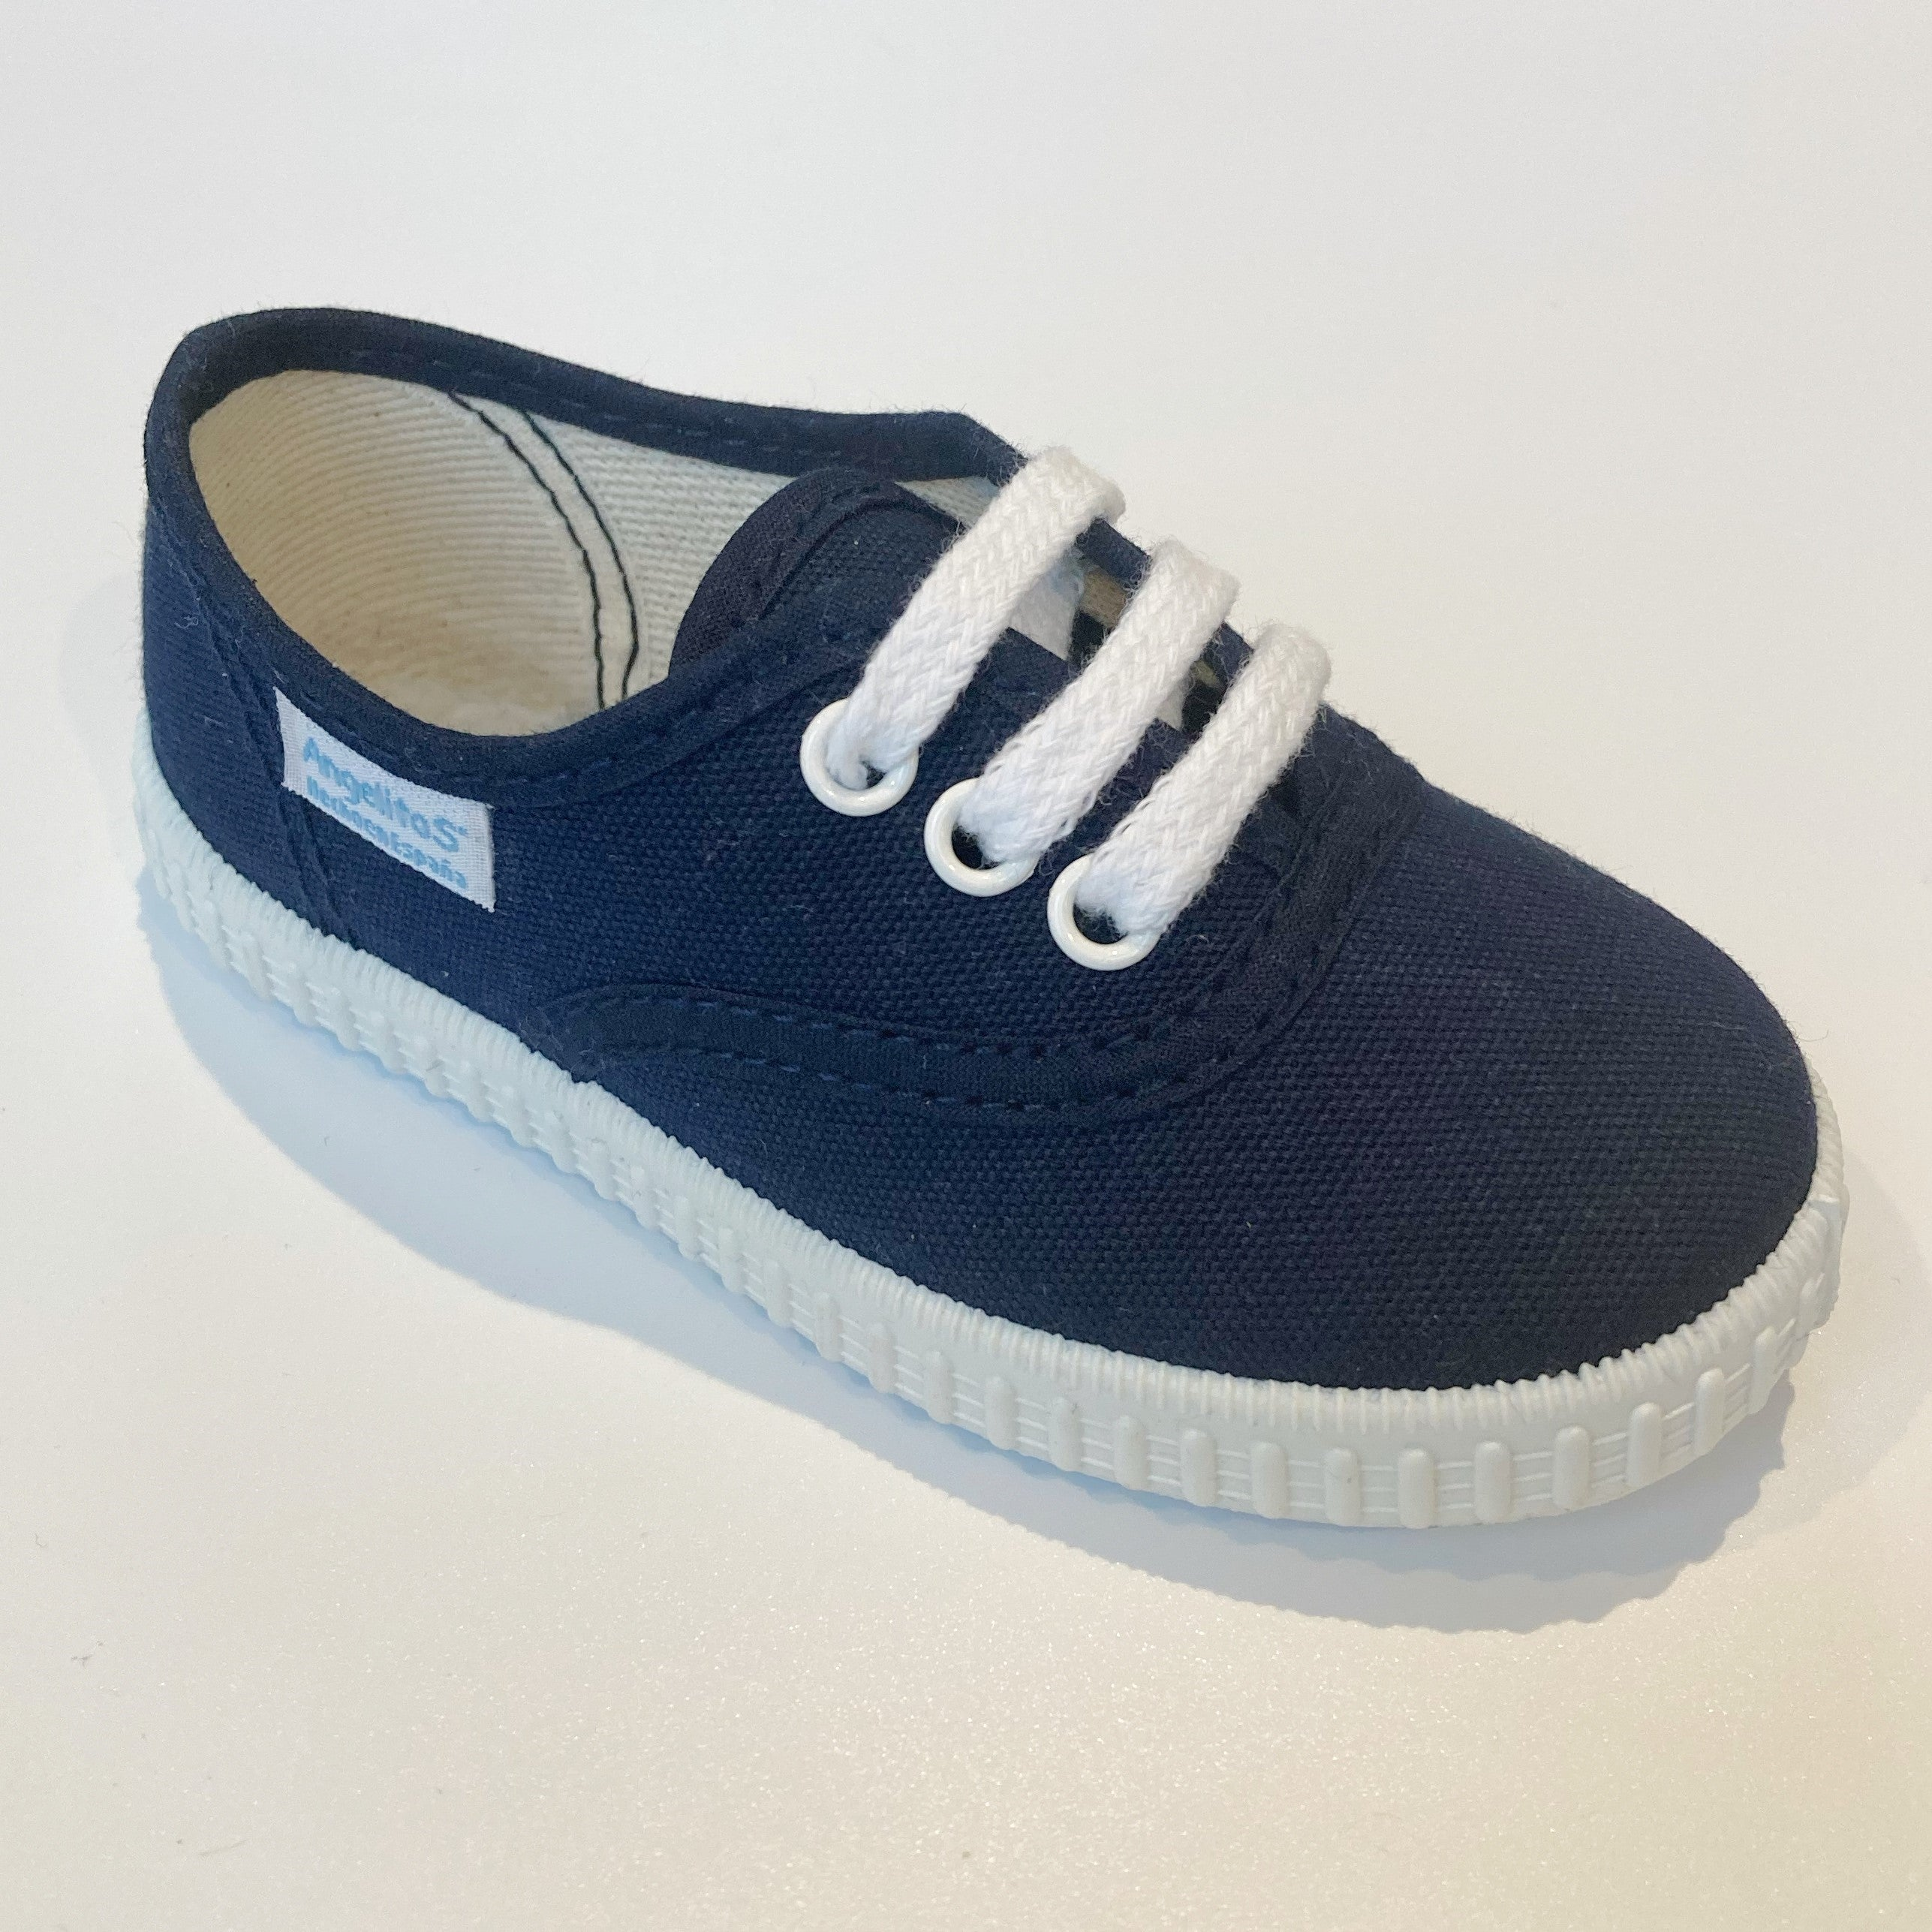 Angelitos Lace up Canvas Shoes - Navy